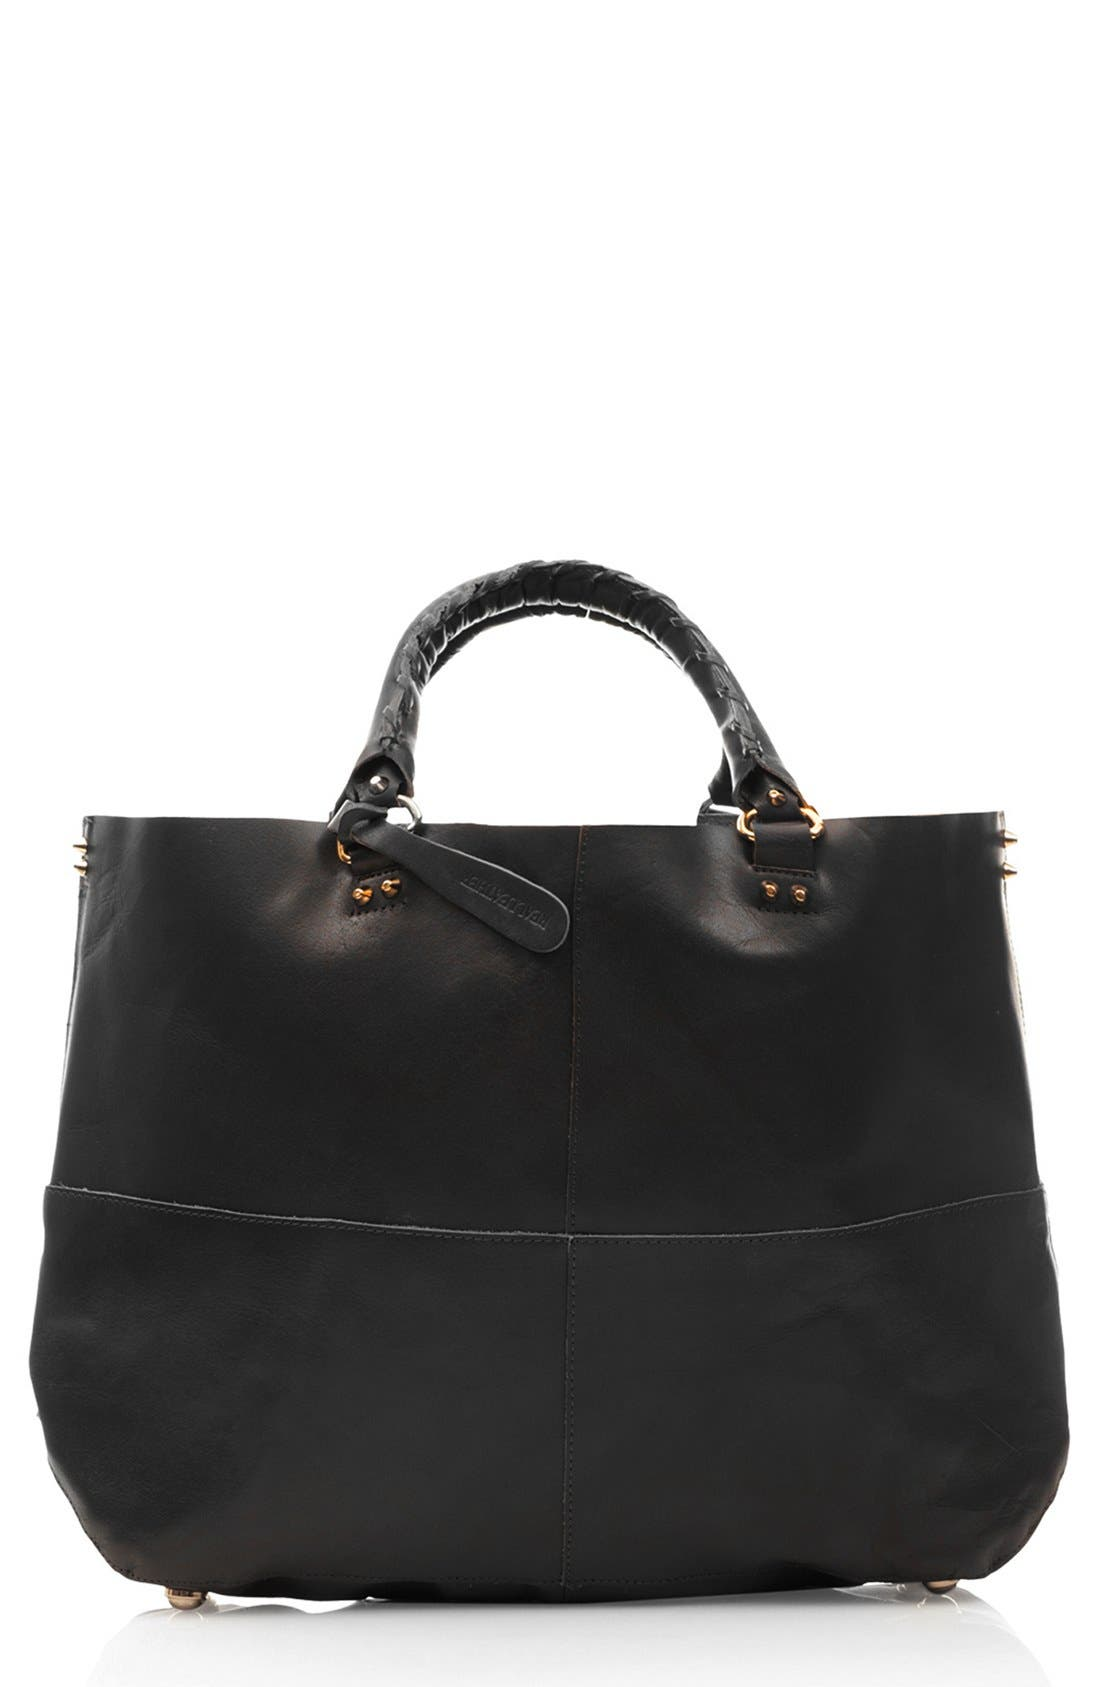 Alternate Image 1 Selected - Topshop 'Clean' Leather Tote